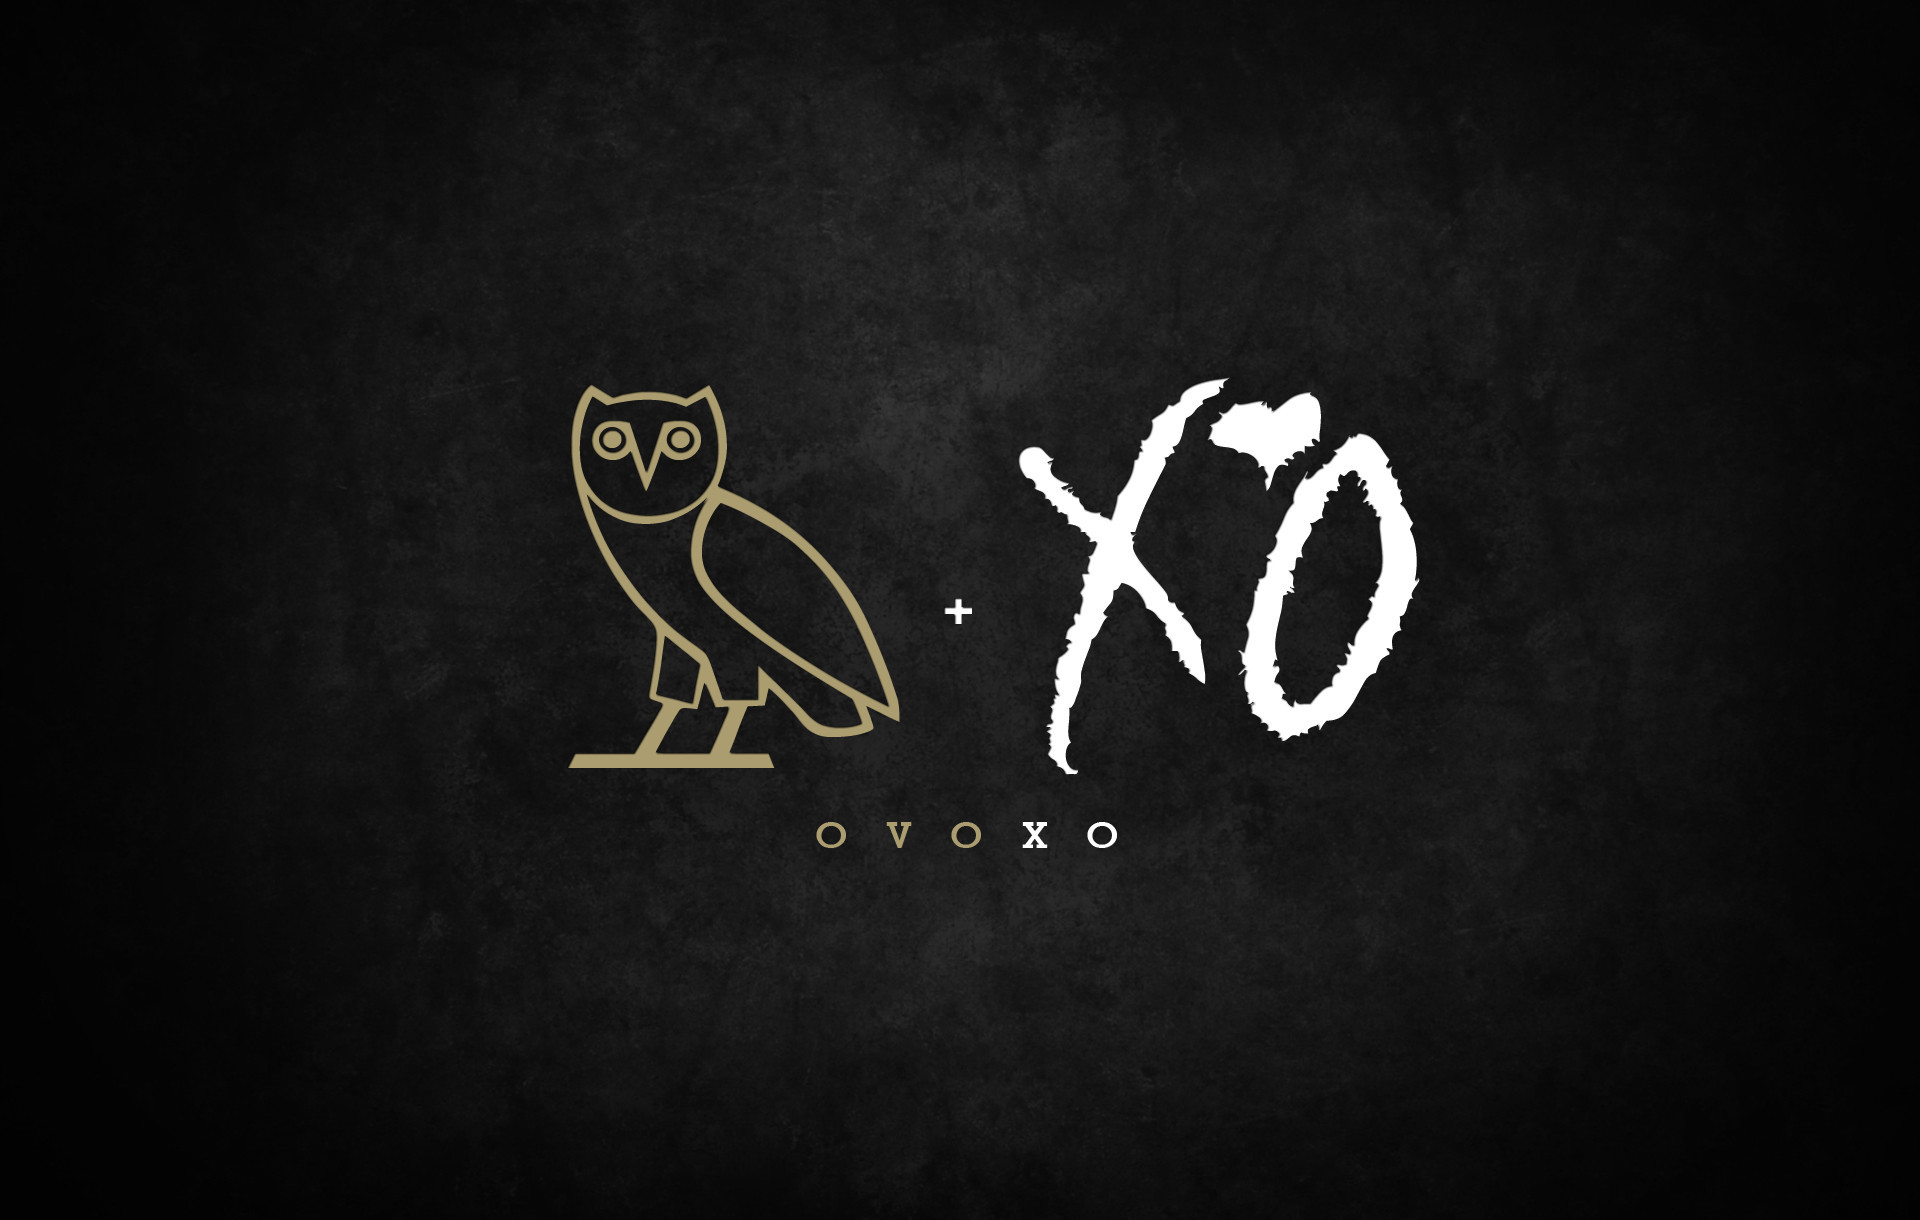 OVO | OVOXO Wallpapers – Page 16 Â« Kanye West Forum